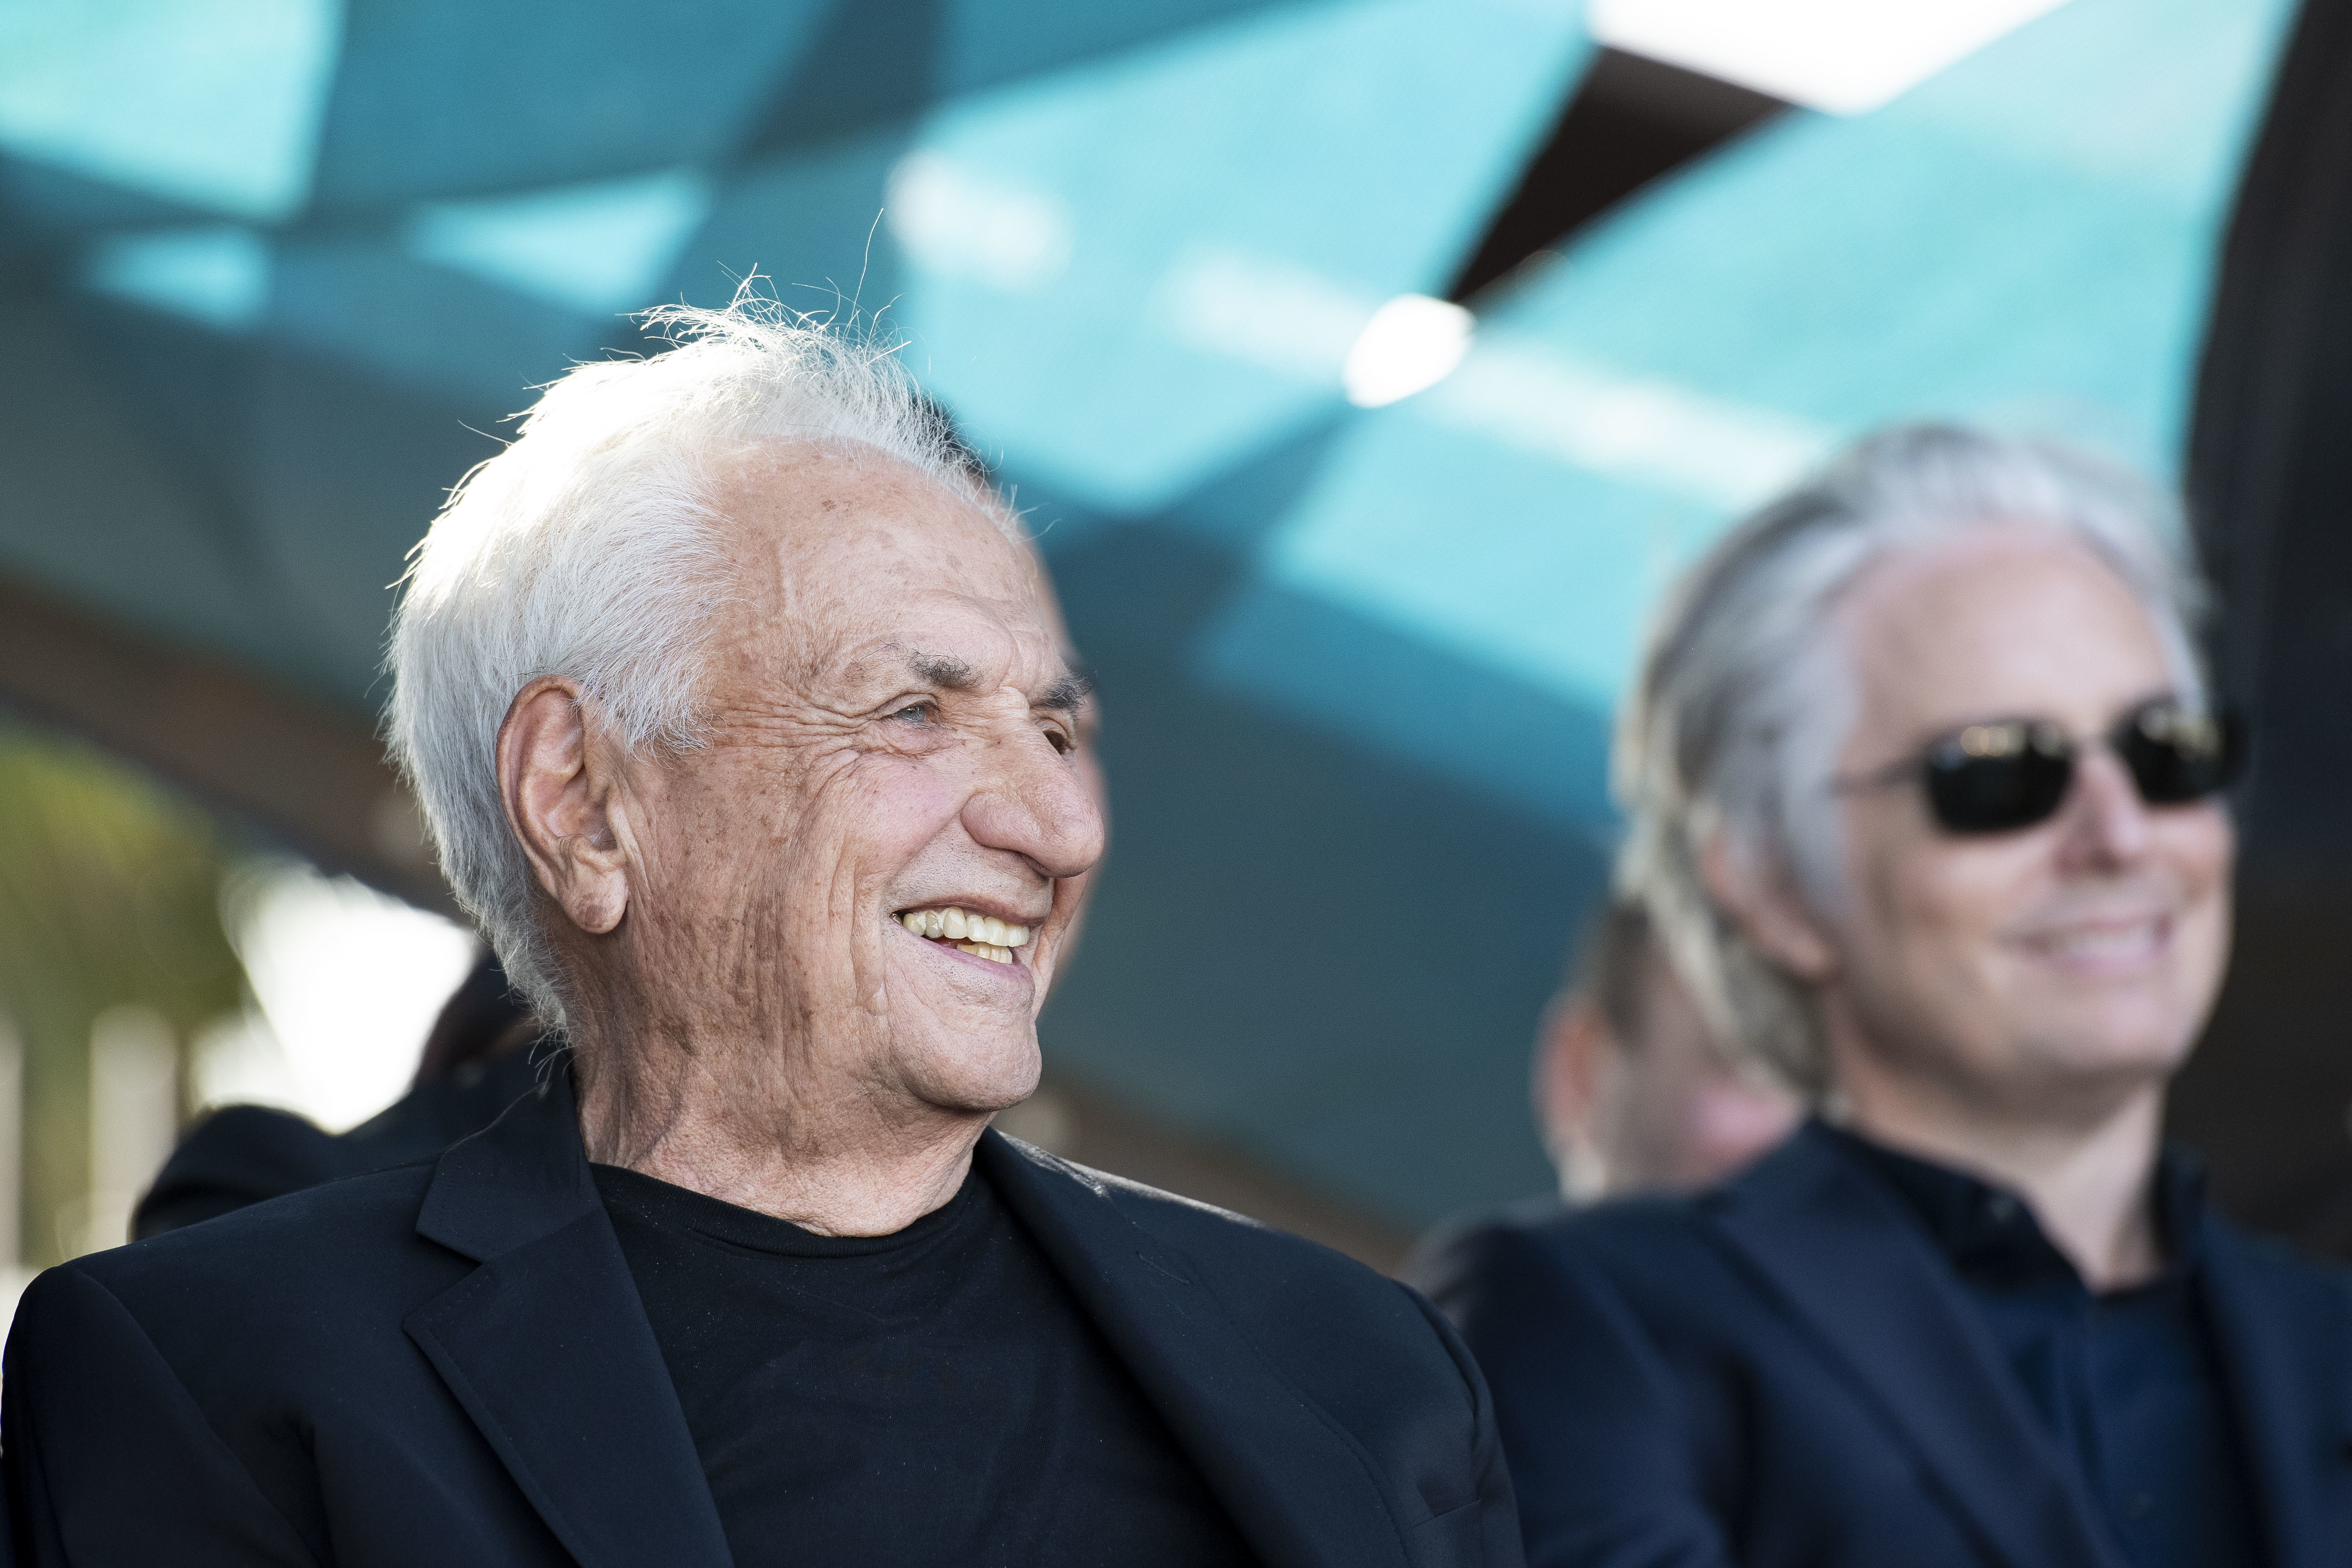 candid photography of Frank Gehry